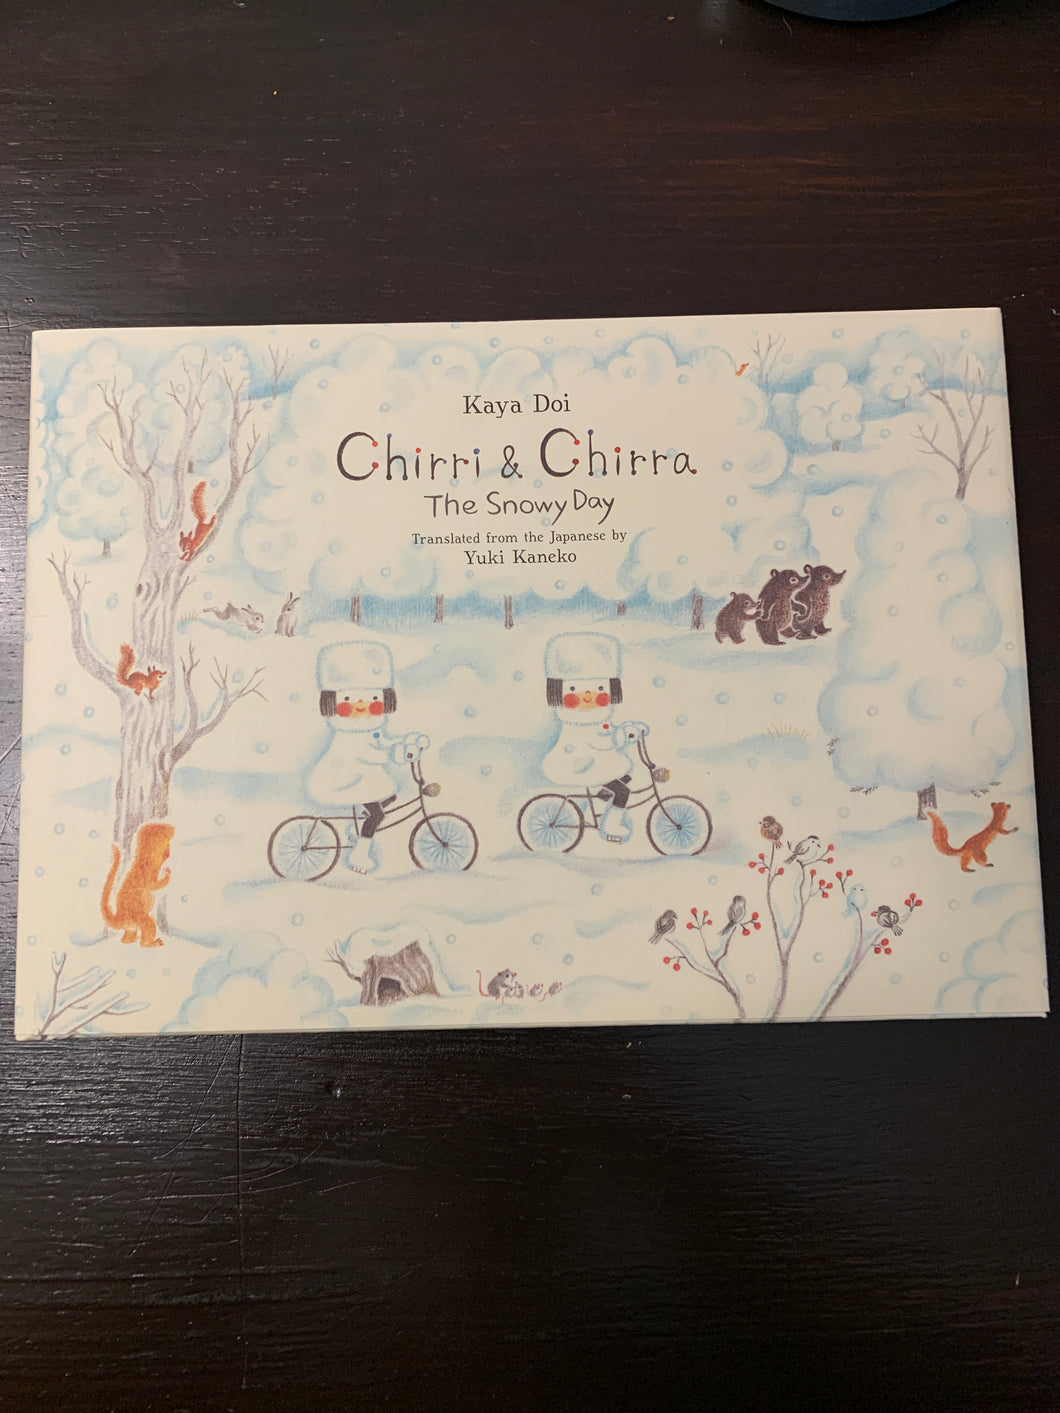 Chirri & Chirra- The Snowy Day